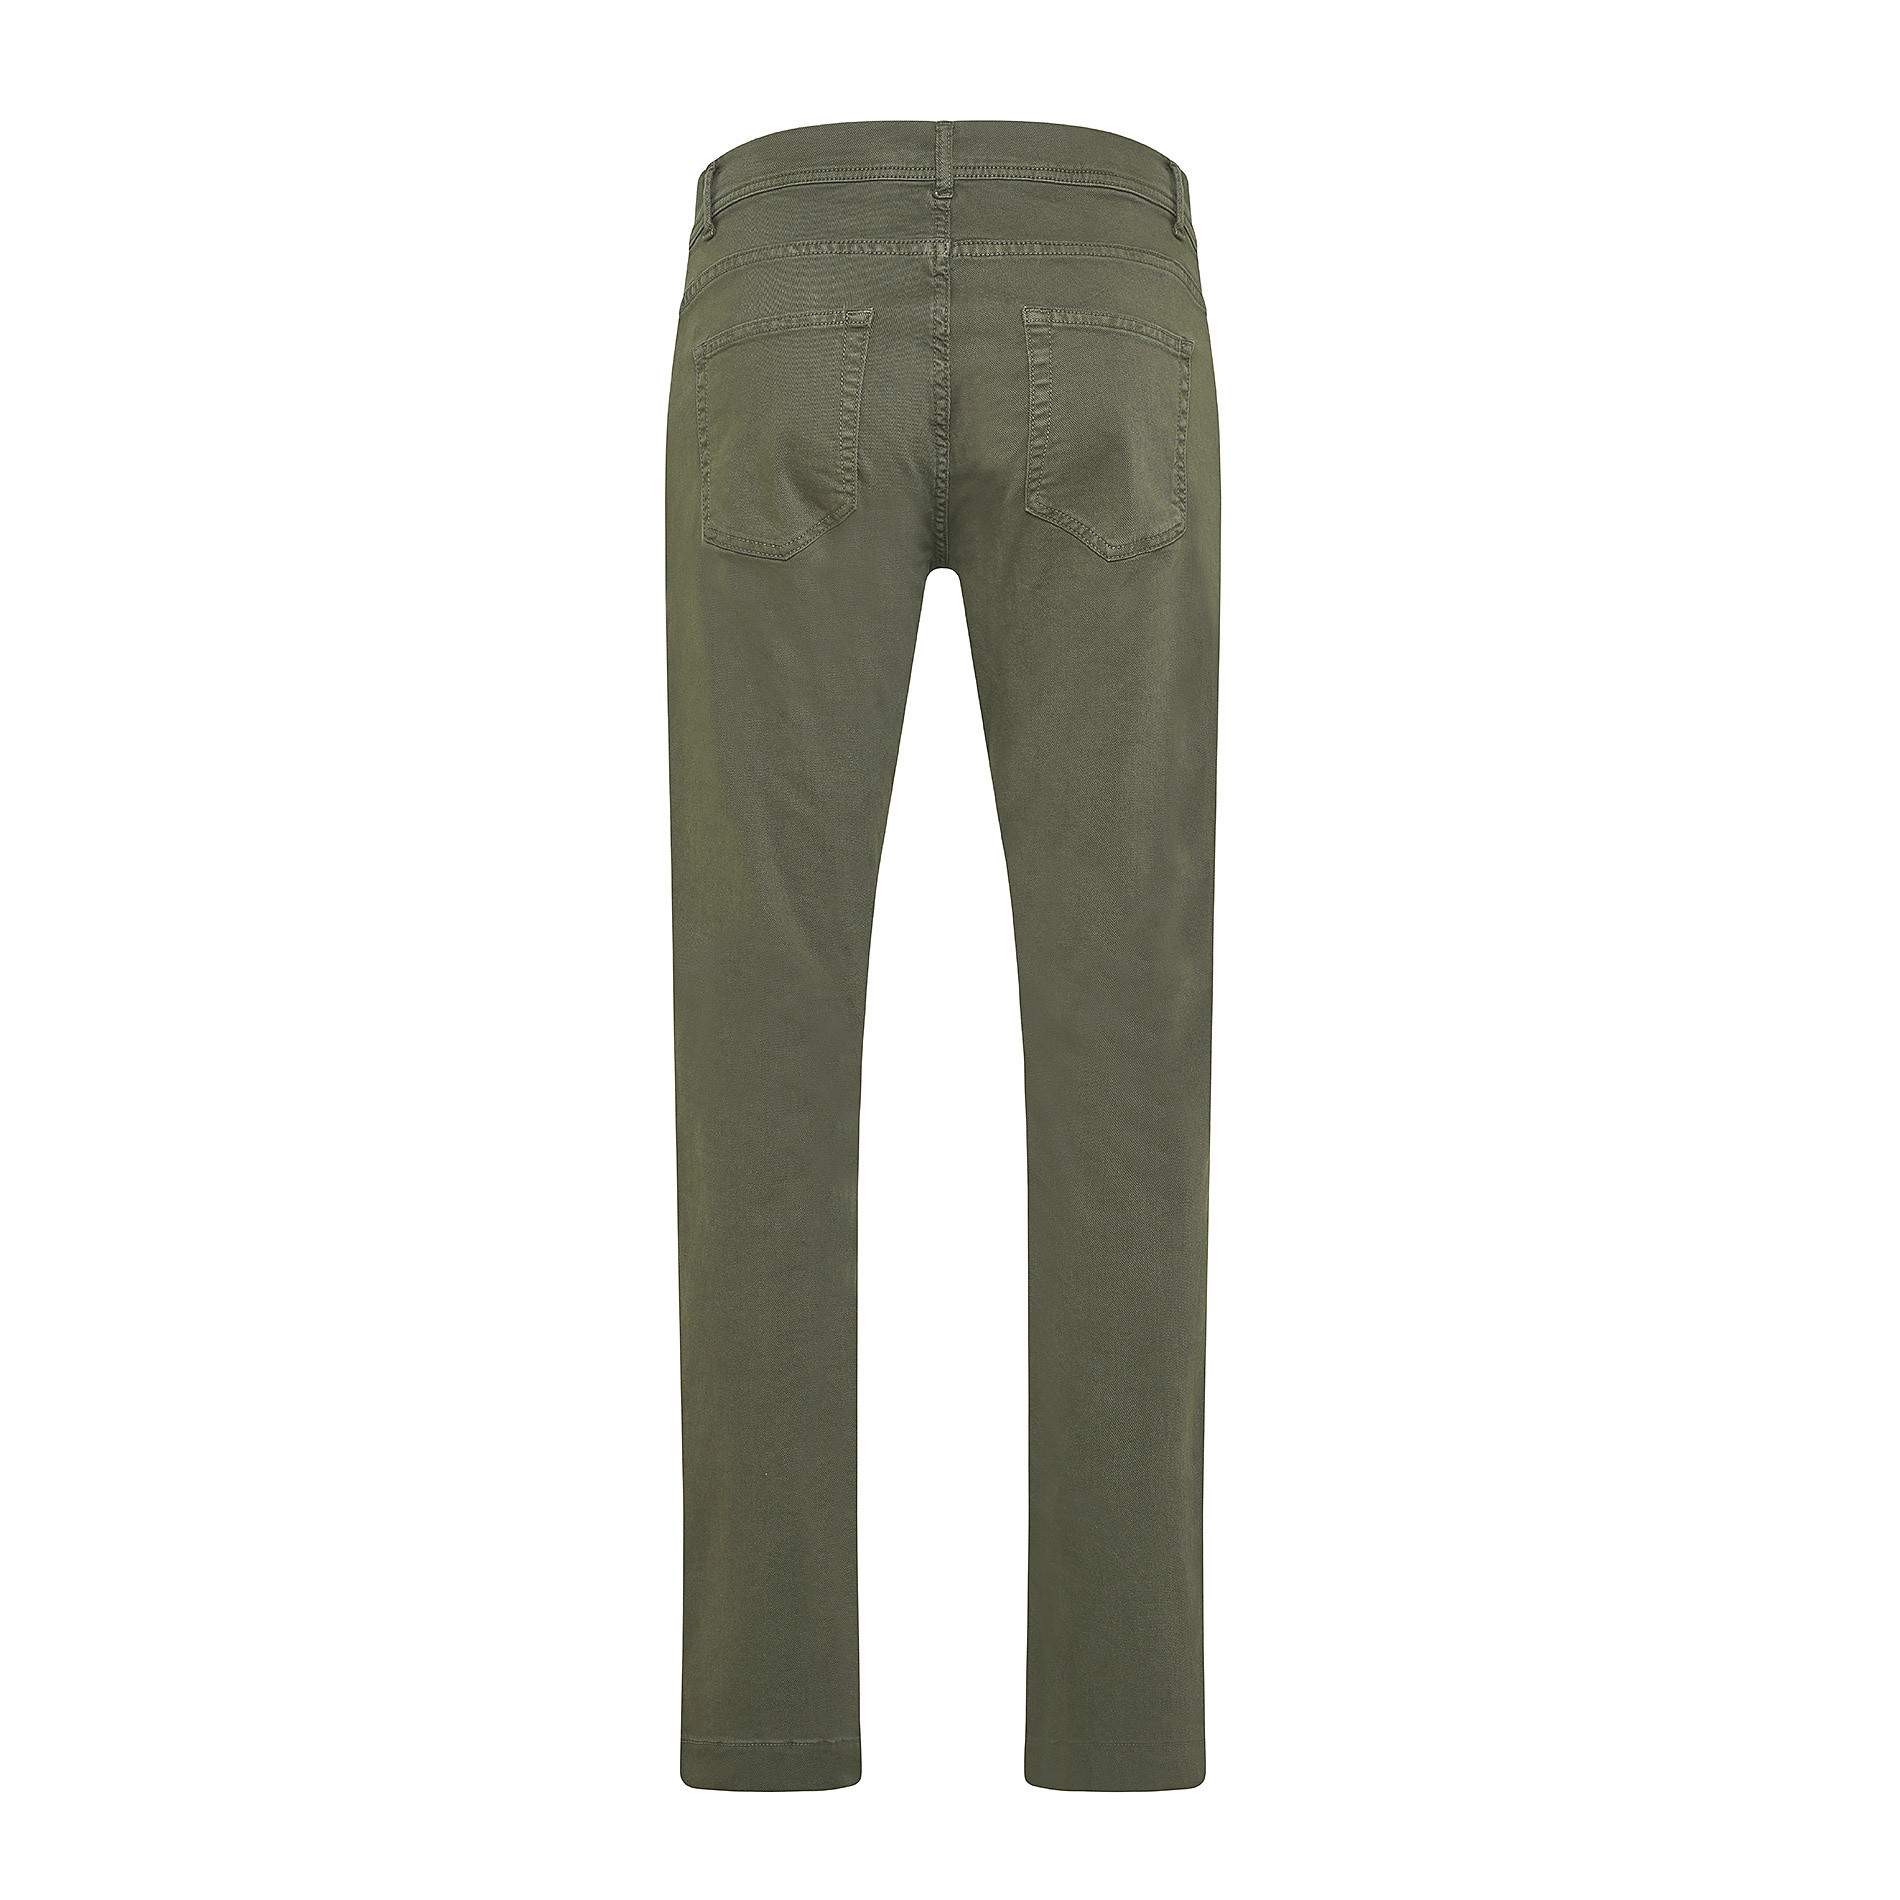 Pantalone cotone stretch 5 tasche JCT, Verde scuro, large image number 1